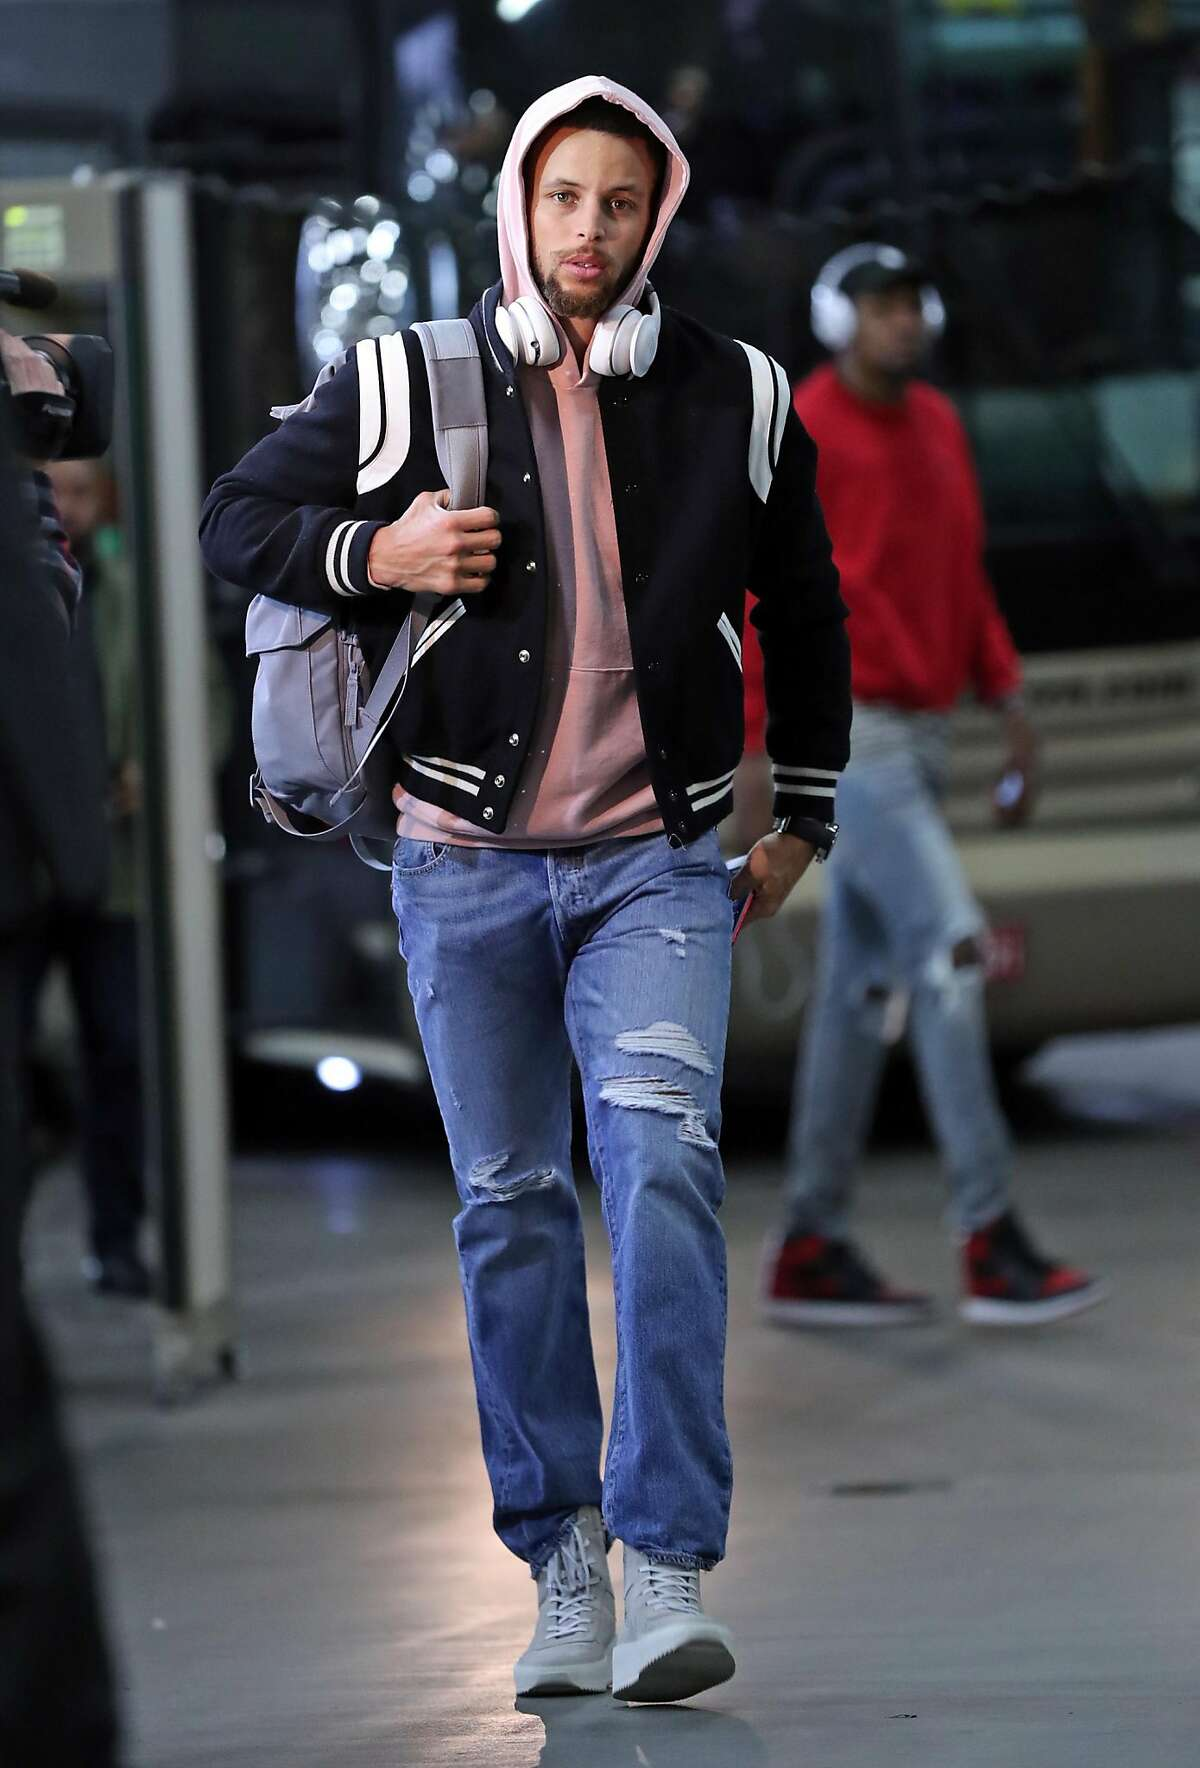 Express poster boy Stephen Curry goes for their signature trendy casual vibe, pairing a letterman-style jacket with a pink hoodie.